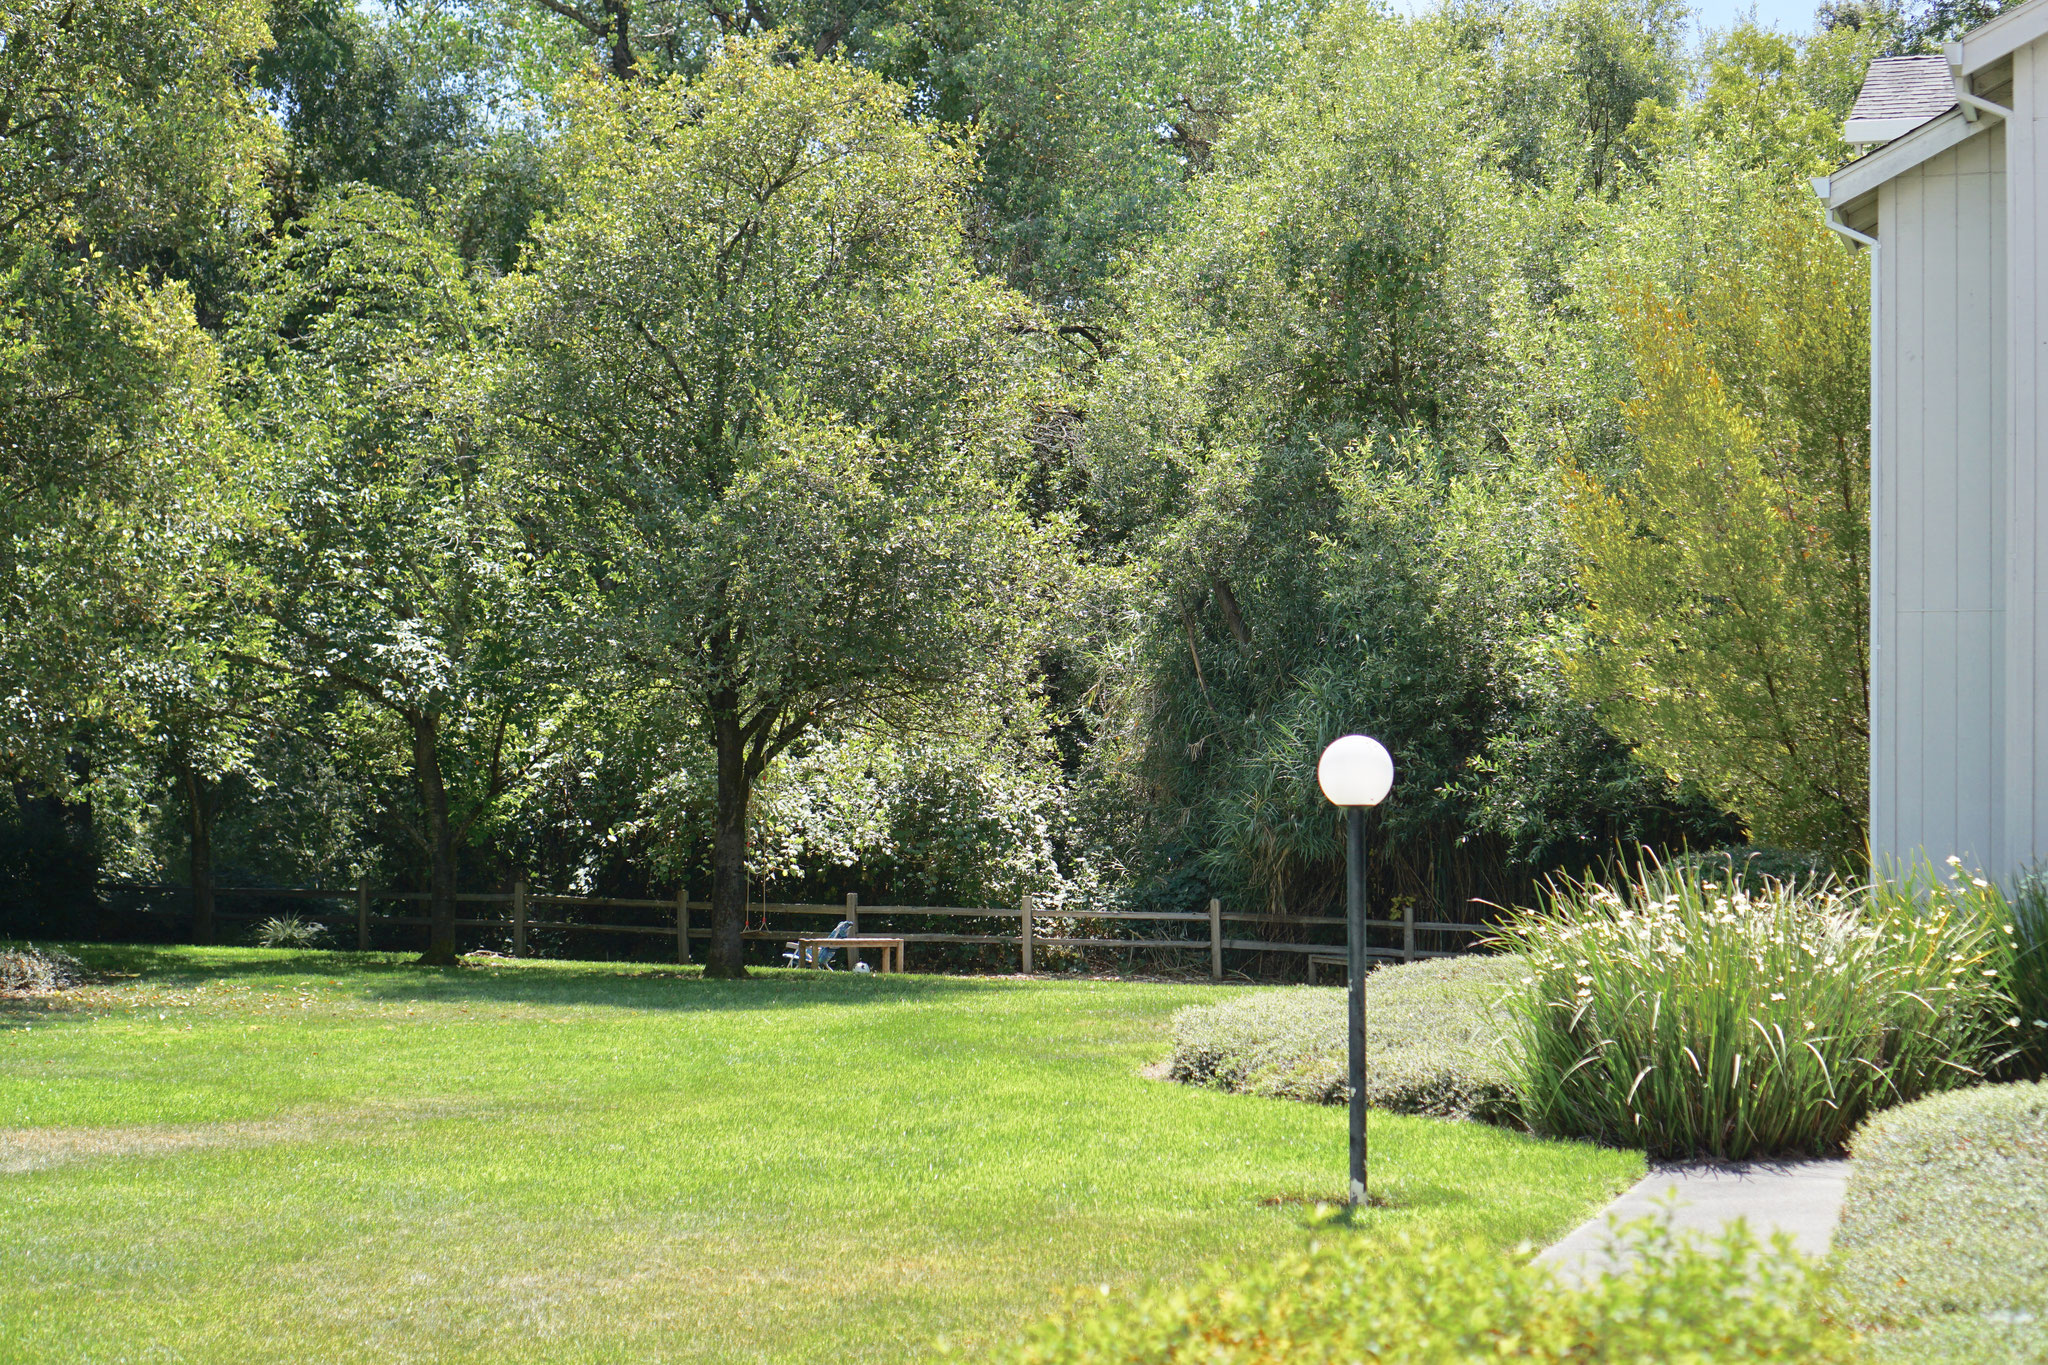 quiet and serene green space near the creek at the back of the apartment complex